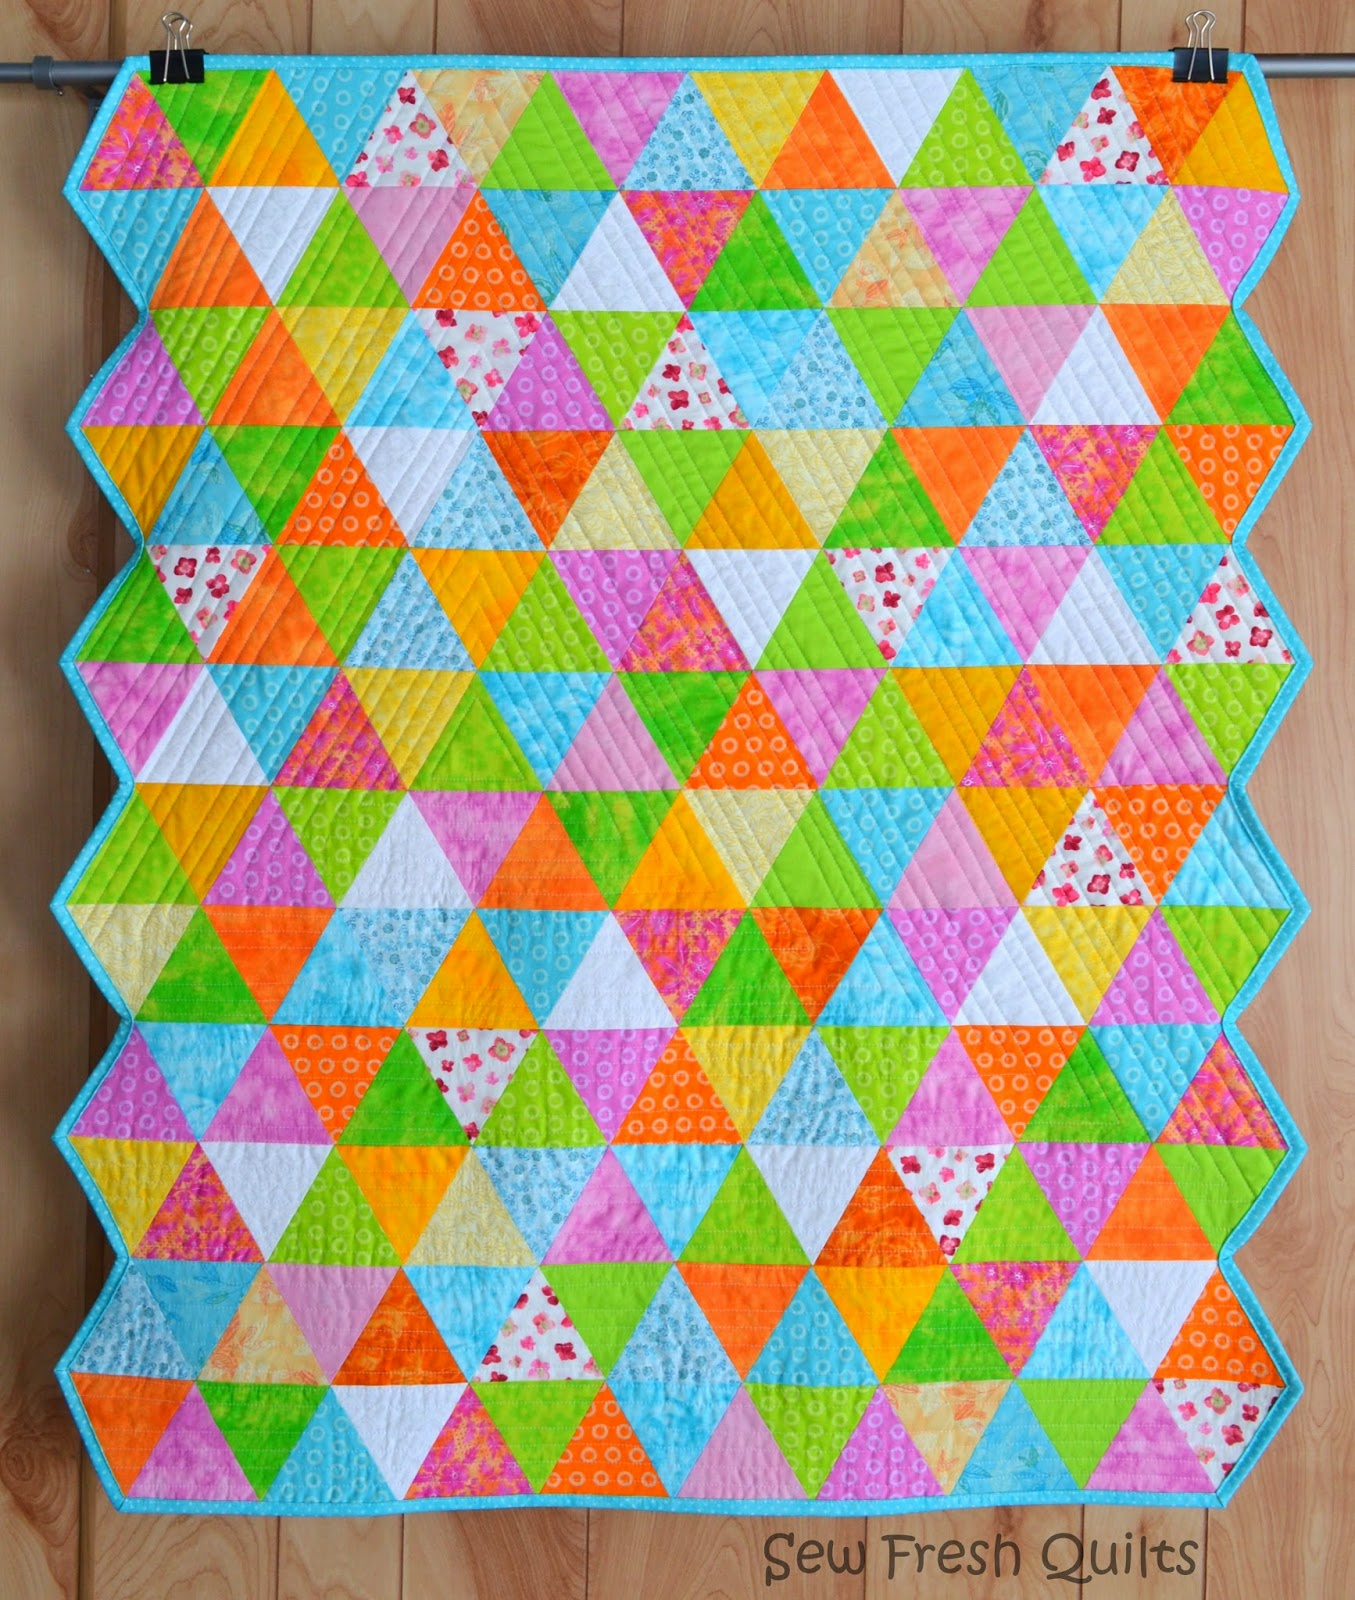 Sew Fresh Quilts Equilateral Triangle Quilt Finished